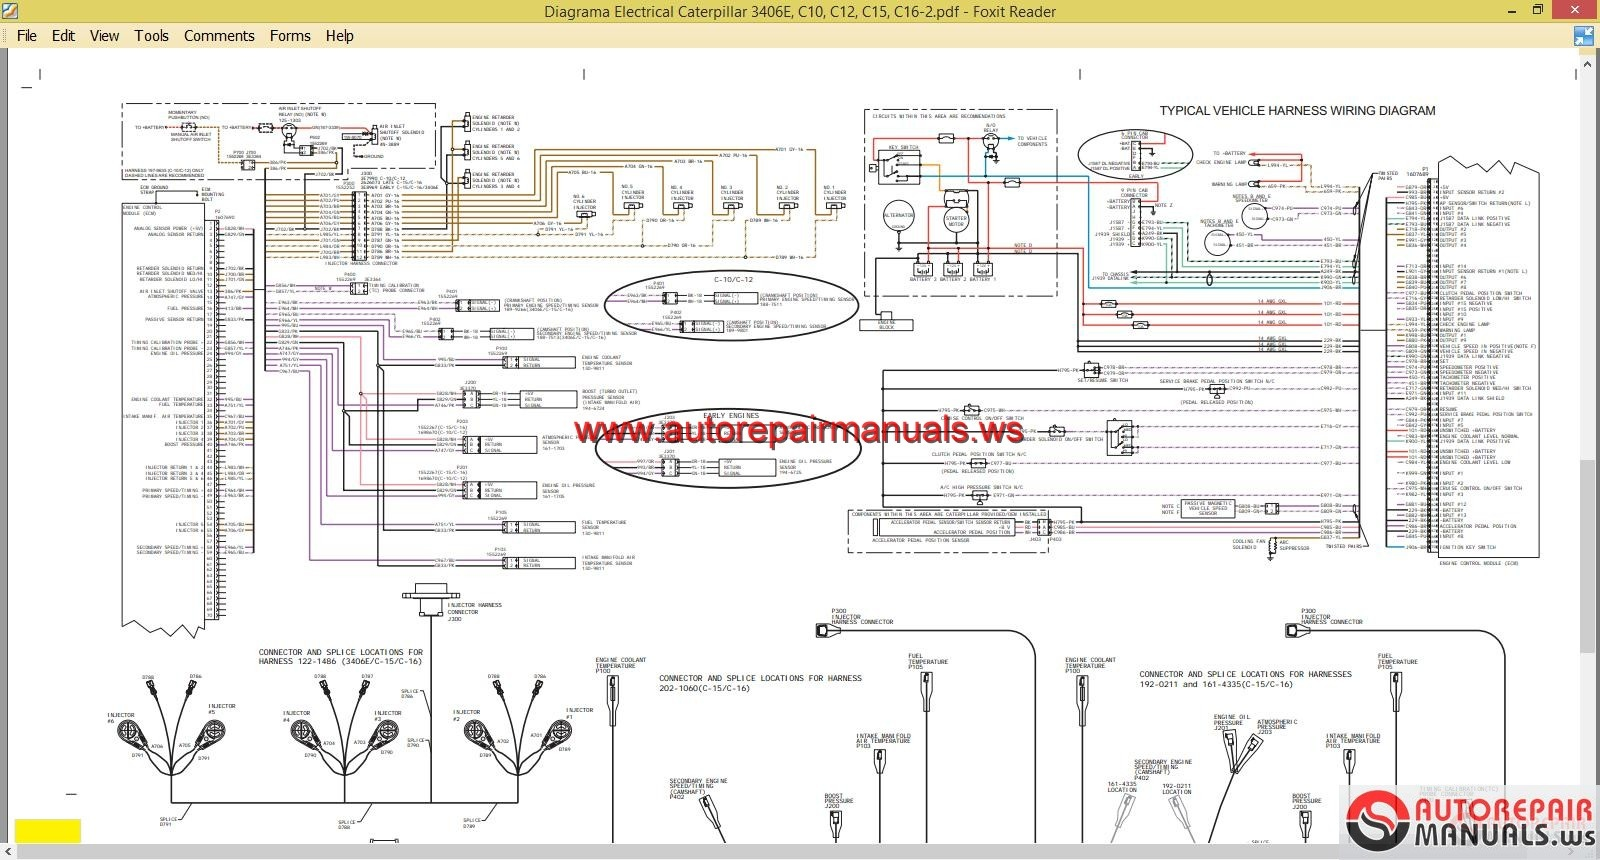 caterpillar 3406e wiring diagram - somurich.com cat 3406e fuel system wiring diagram